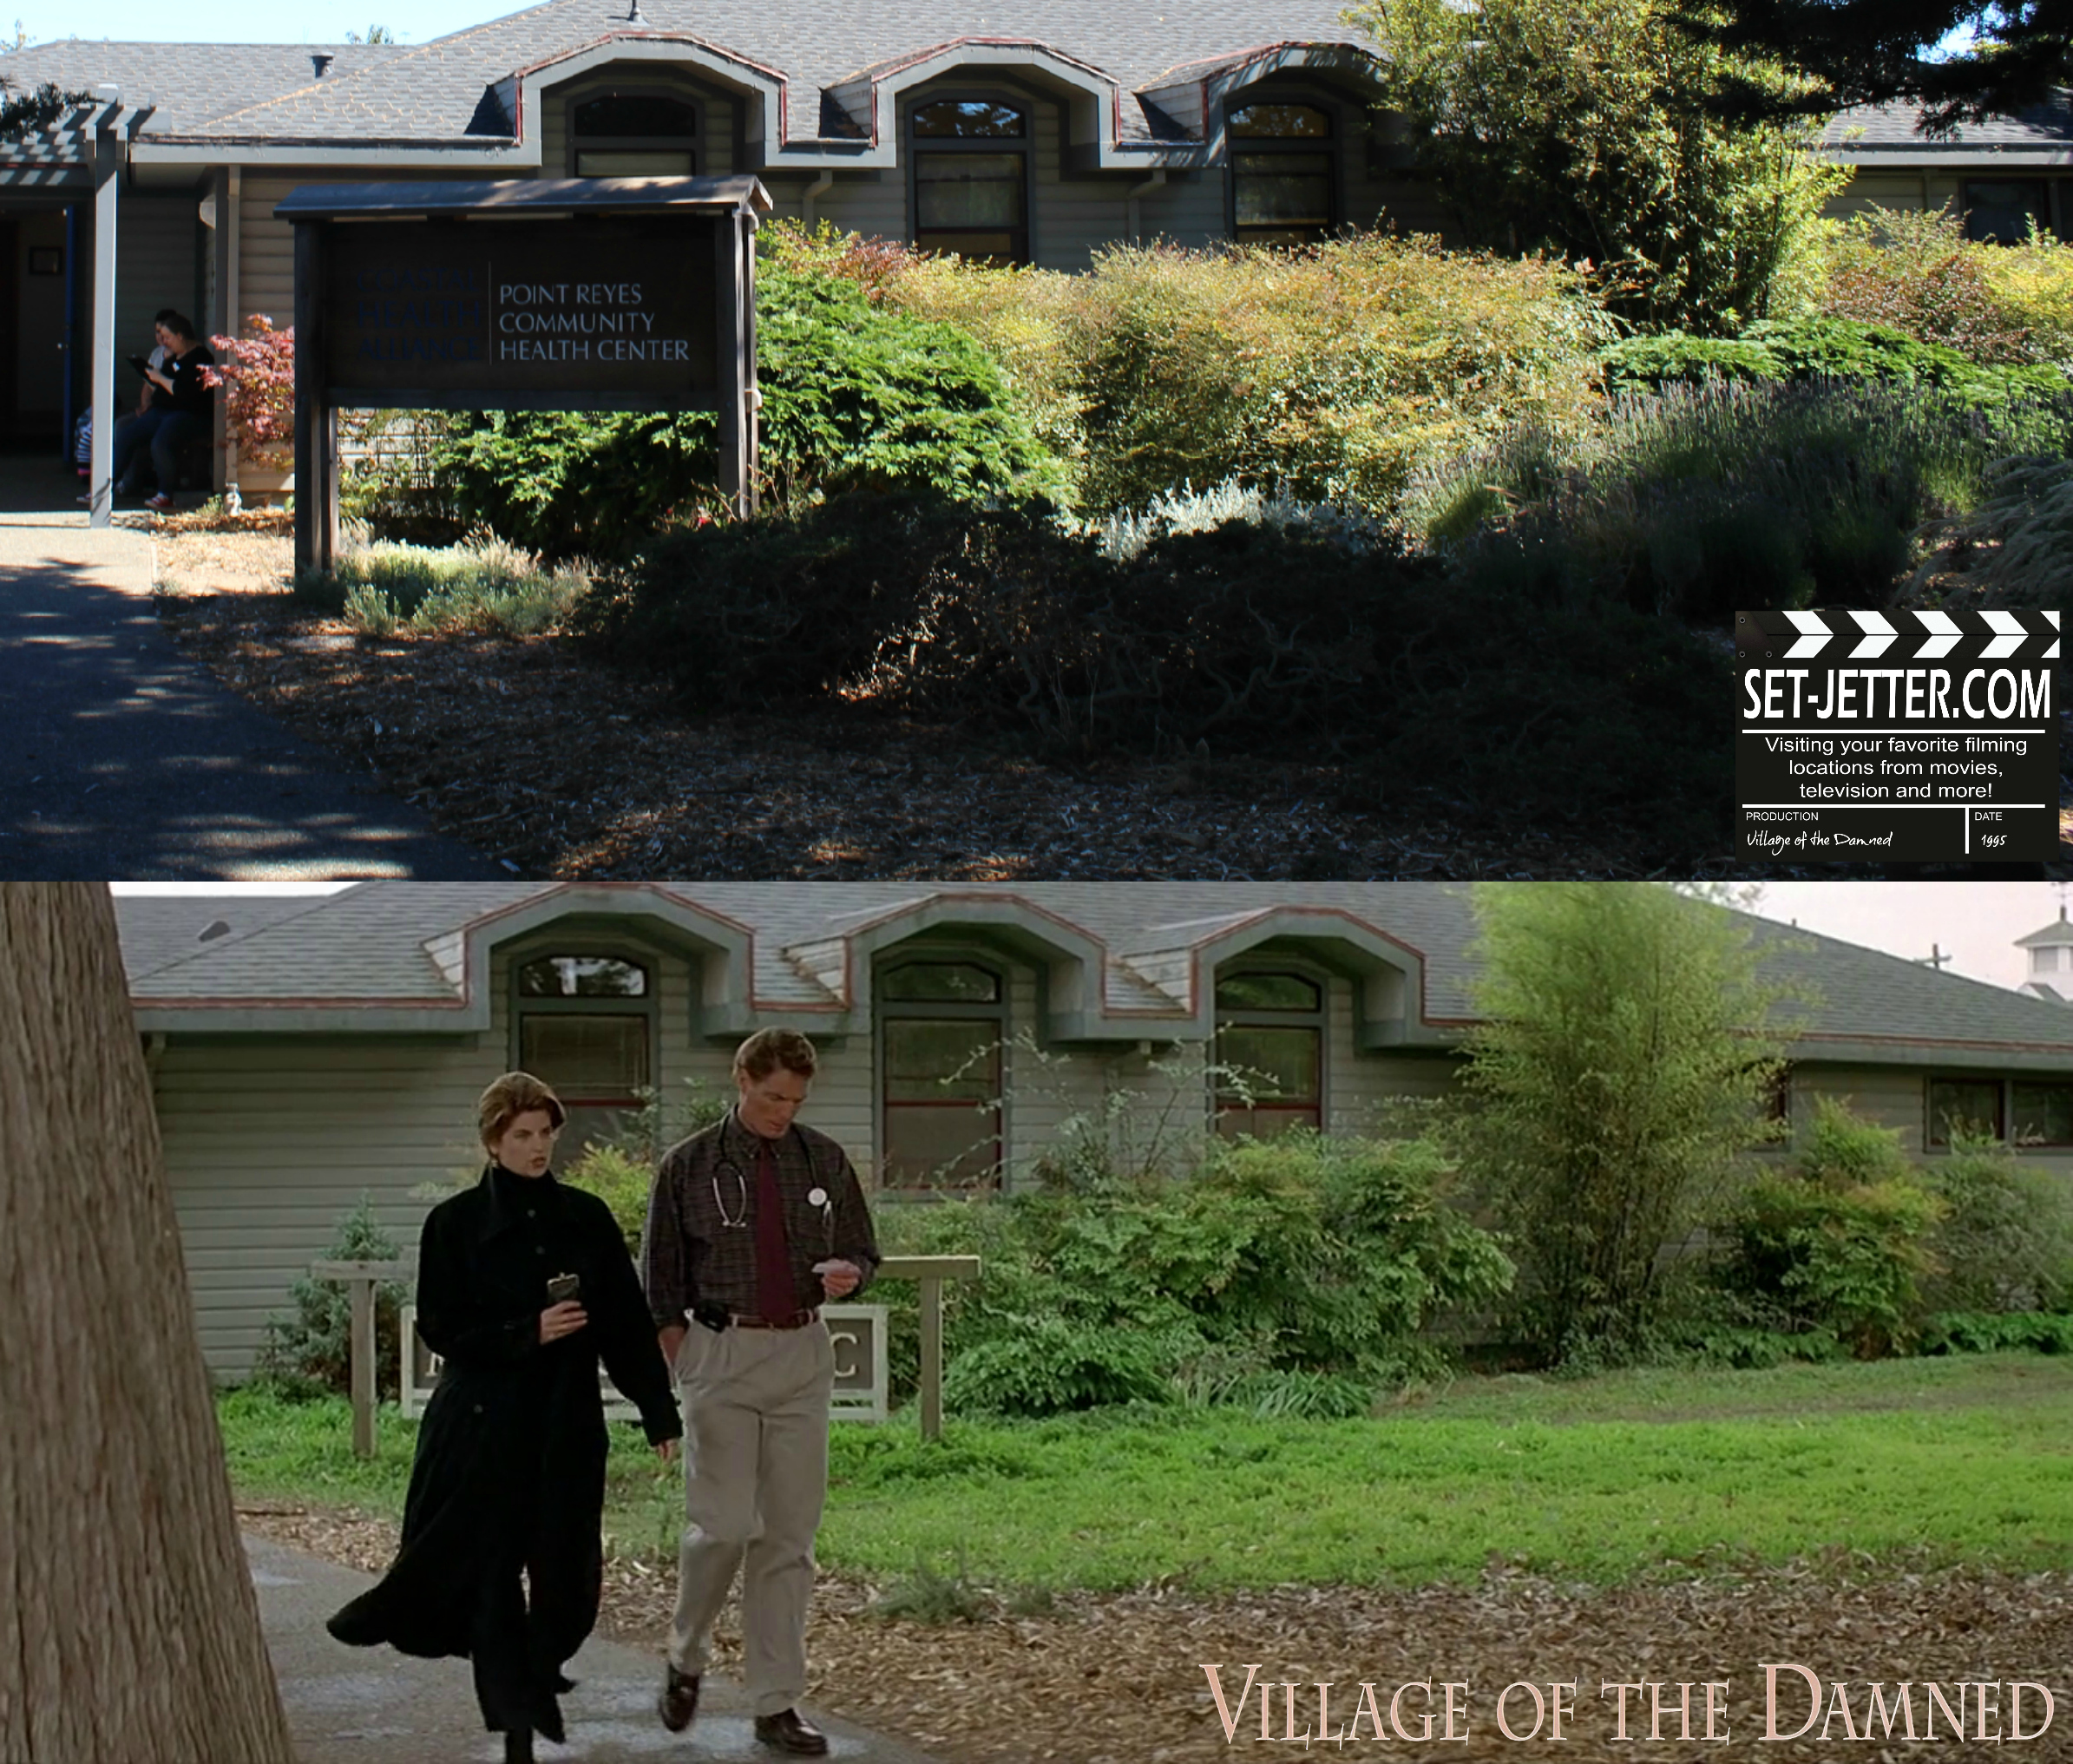 Village of the Damned comparison 119.jpg